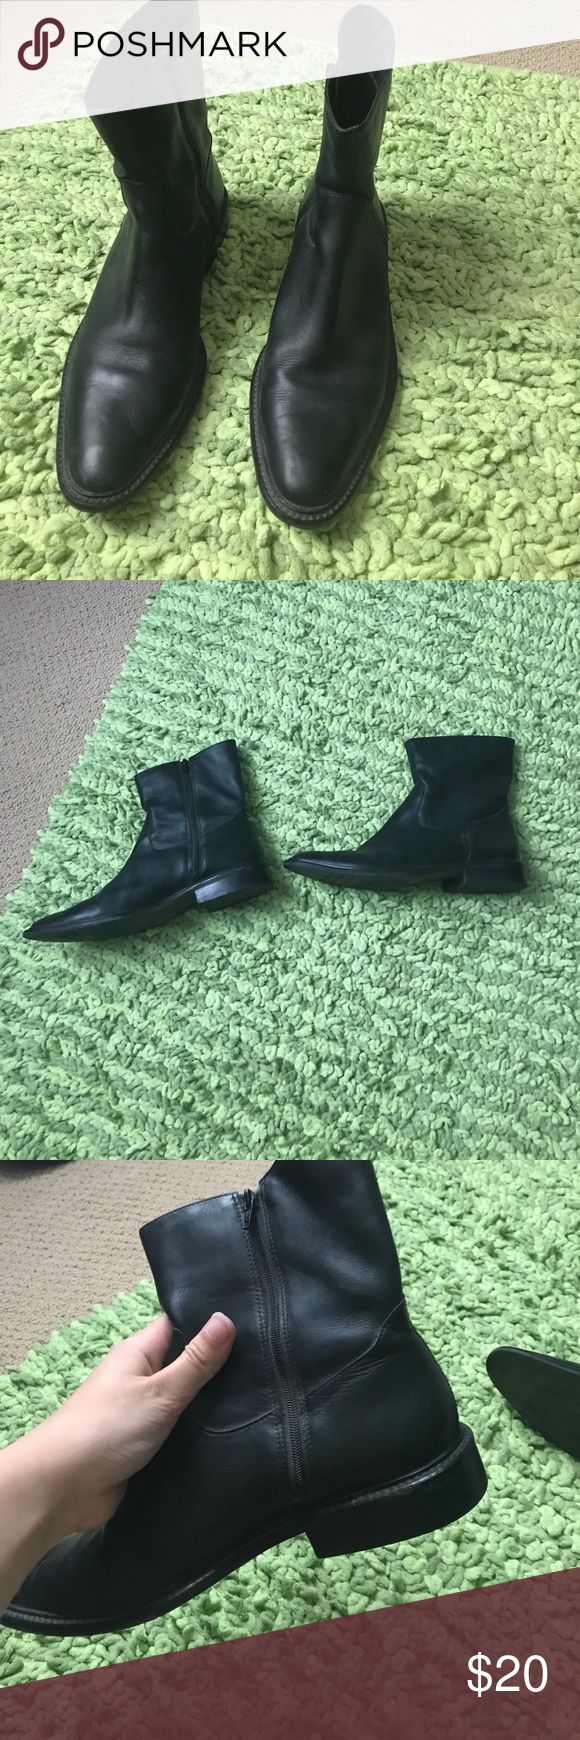 """Eddie Bauer Riding Boots Leather Black Eddie Bauer Leather Riding Boots. Size 10 Womens. """"Leather Upper"""" style. Worn a few times, in good condition. Eddie Bauer Shoes Ankle Boots & Booties"""